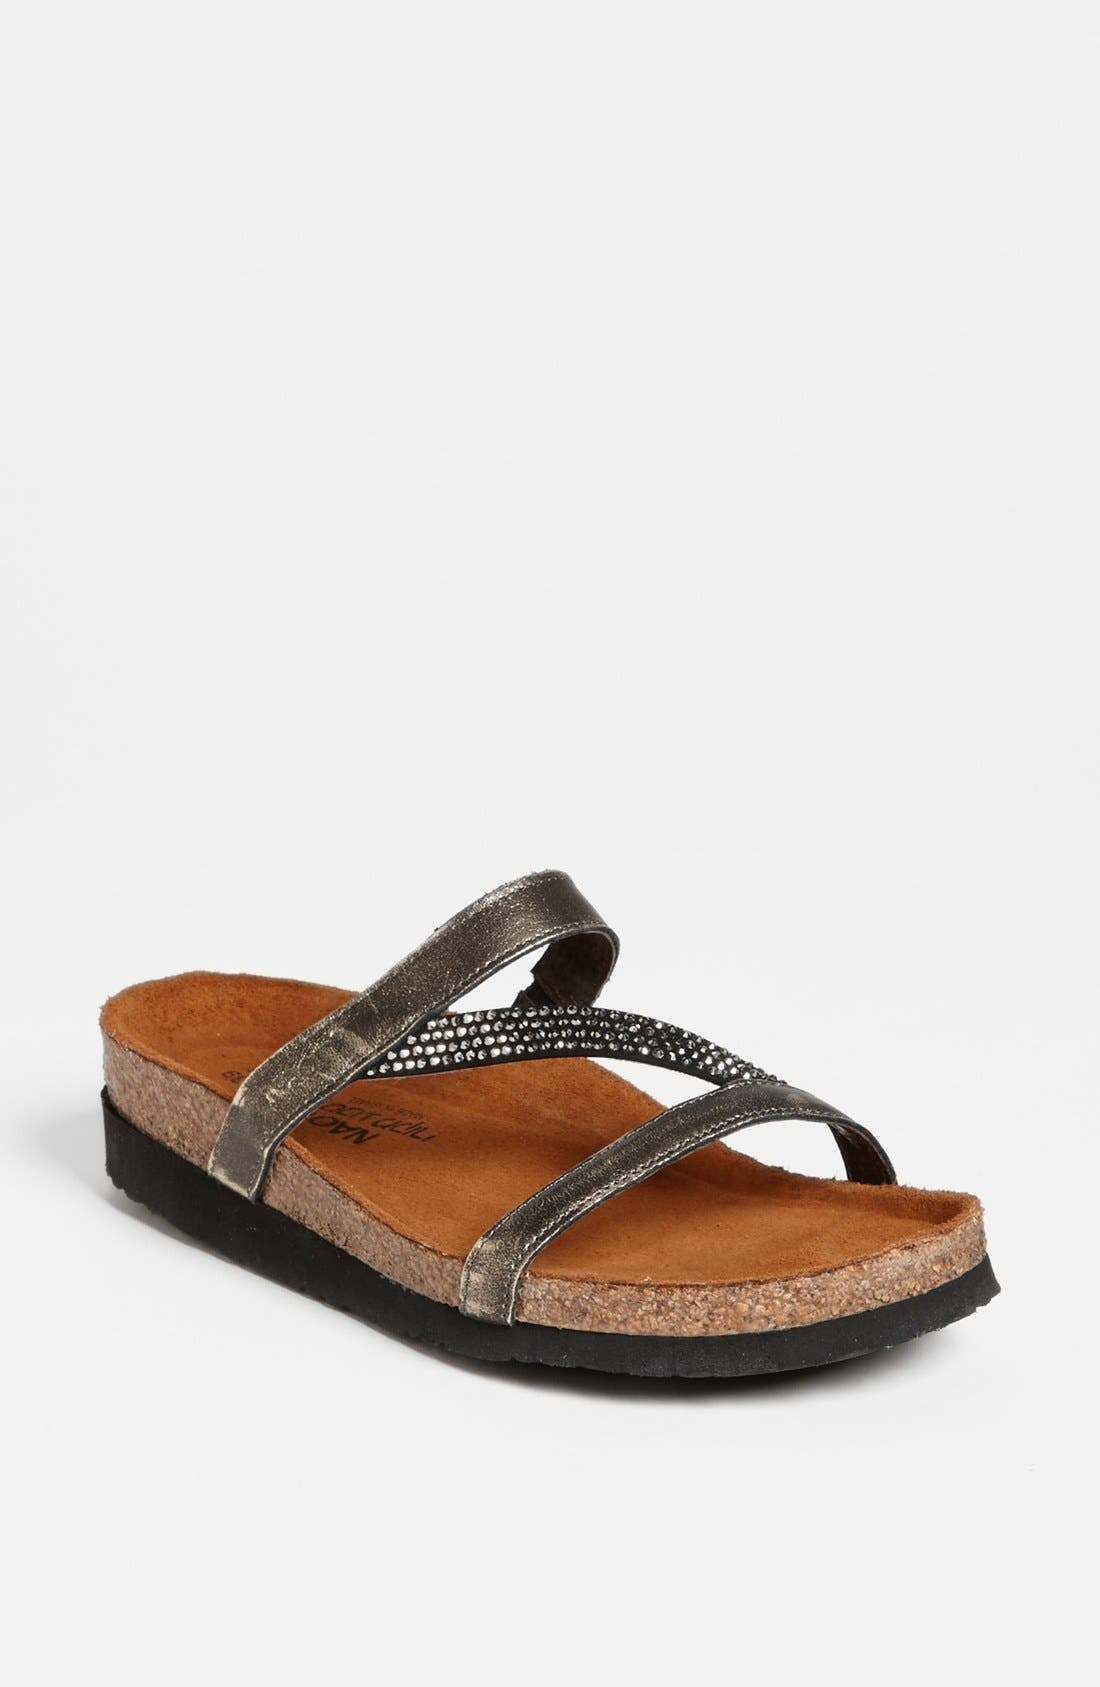 NAOT 'Hawaii' Sandal